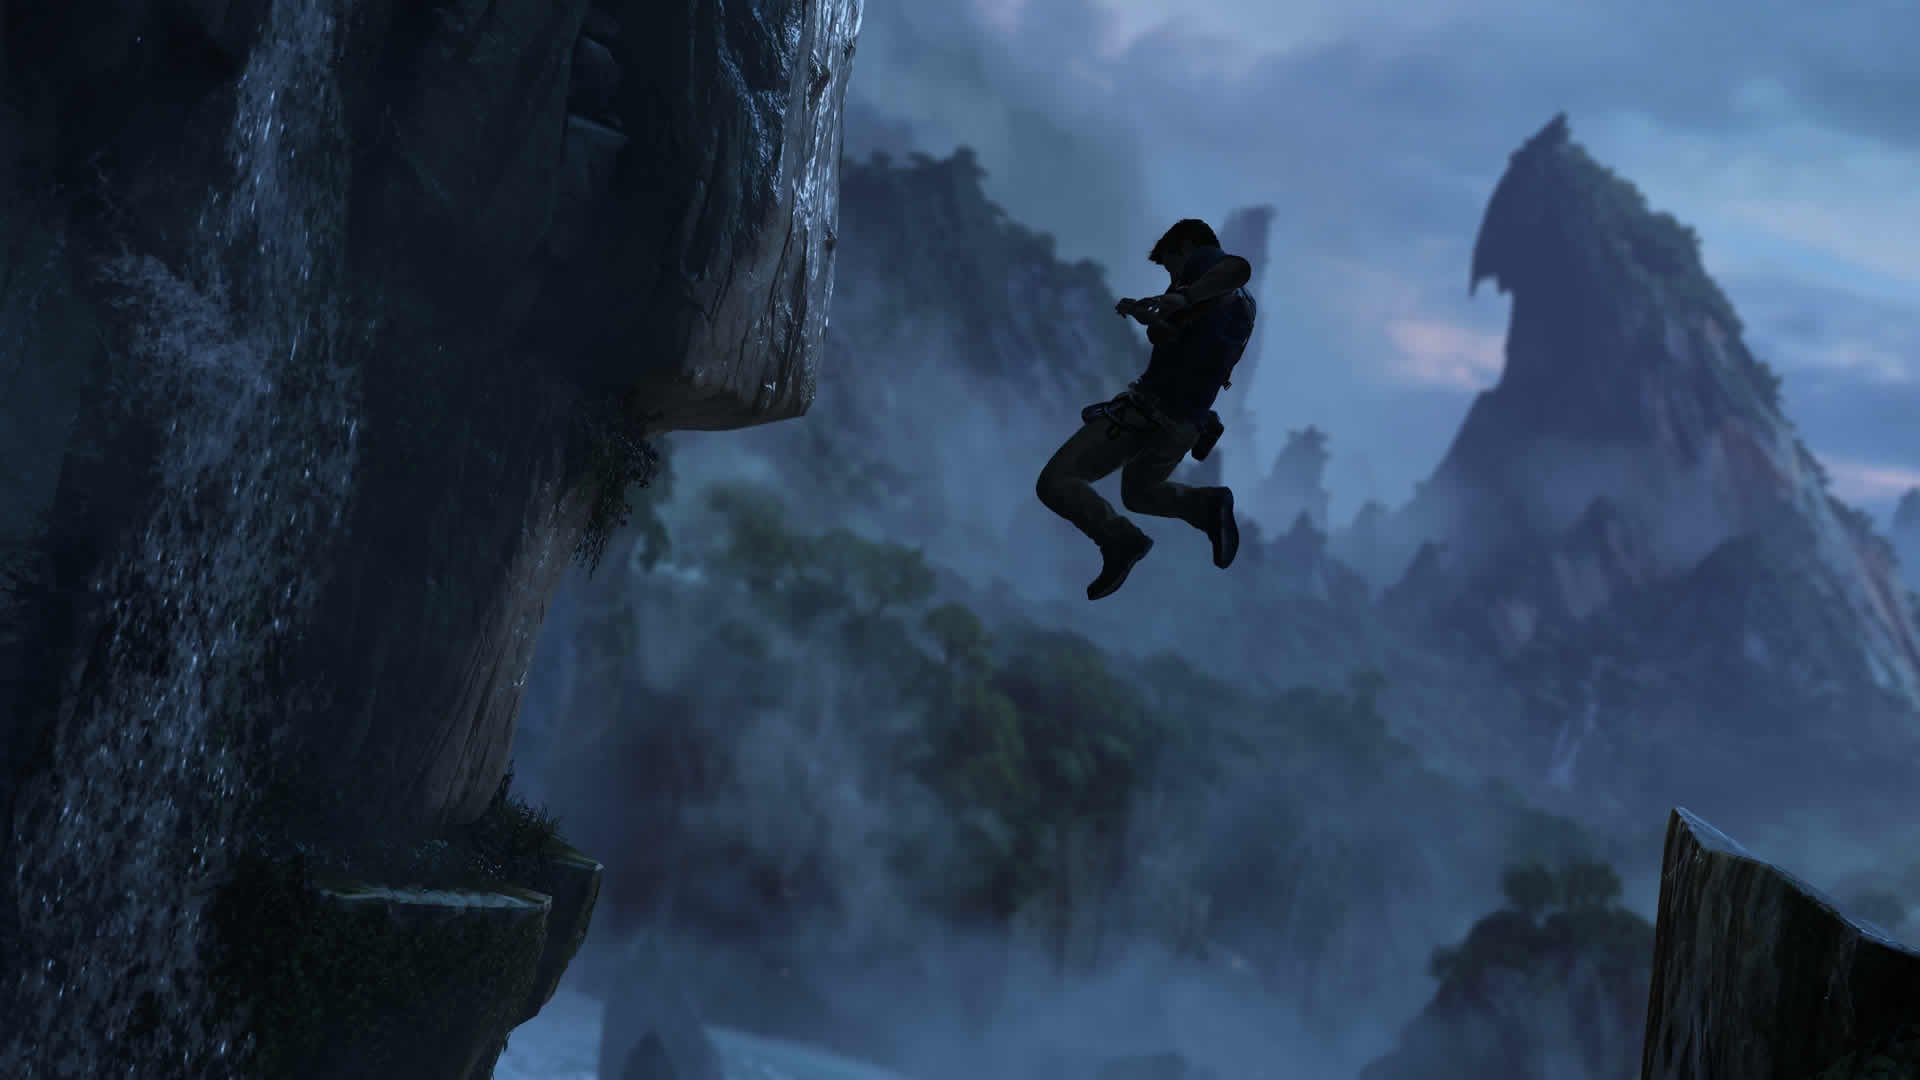 101019_RTsa4GUqLo_uncharted_4_drake_leap